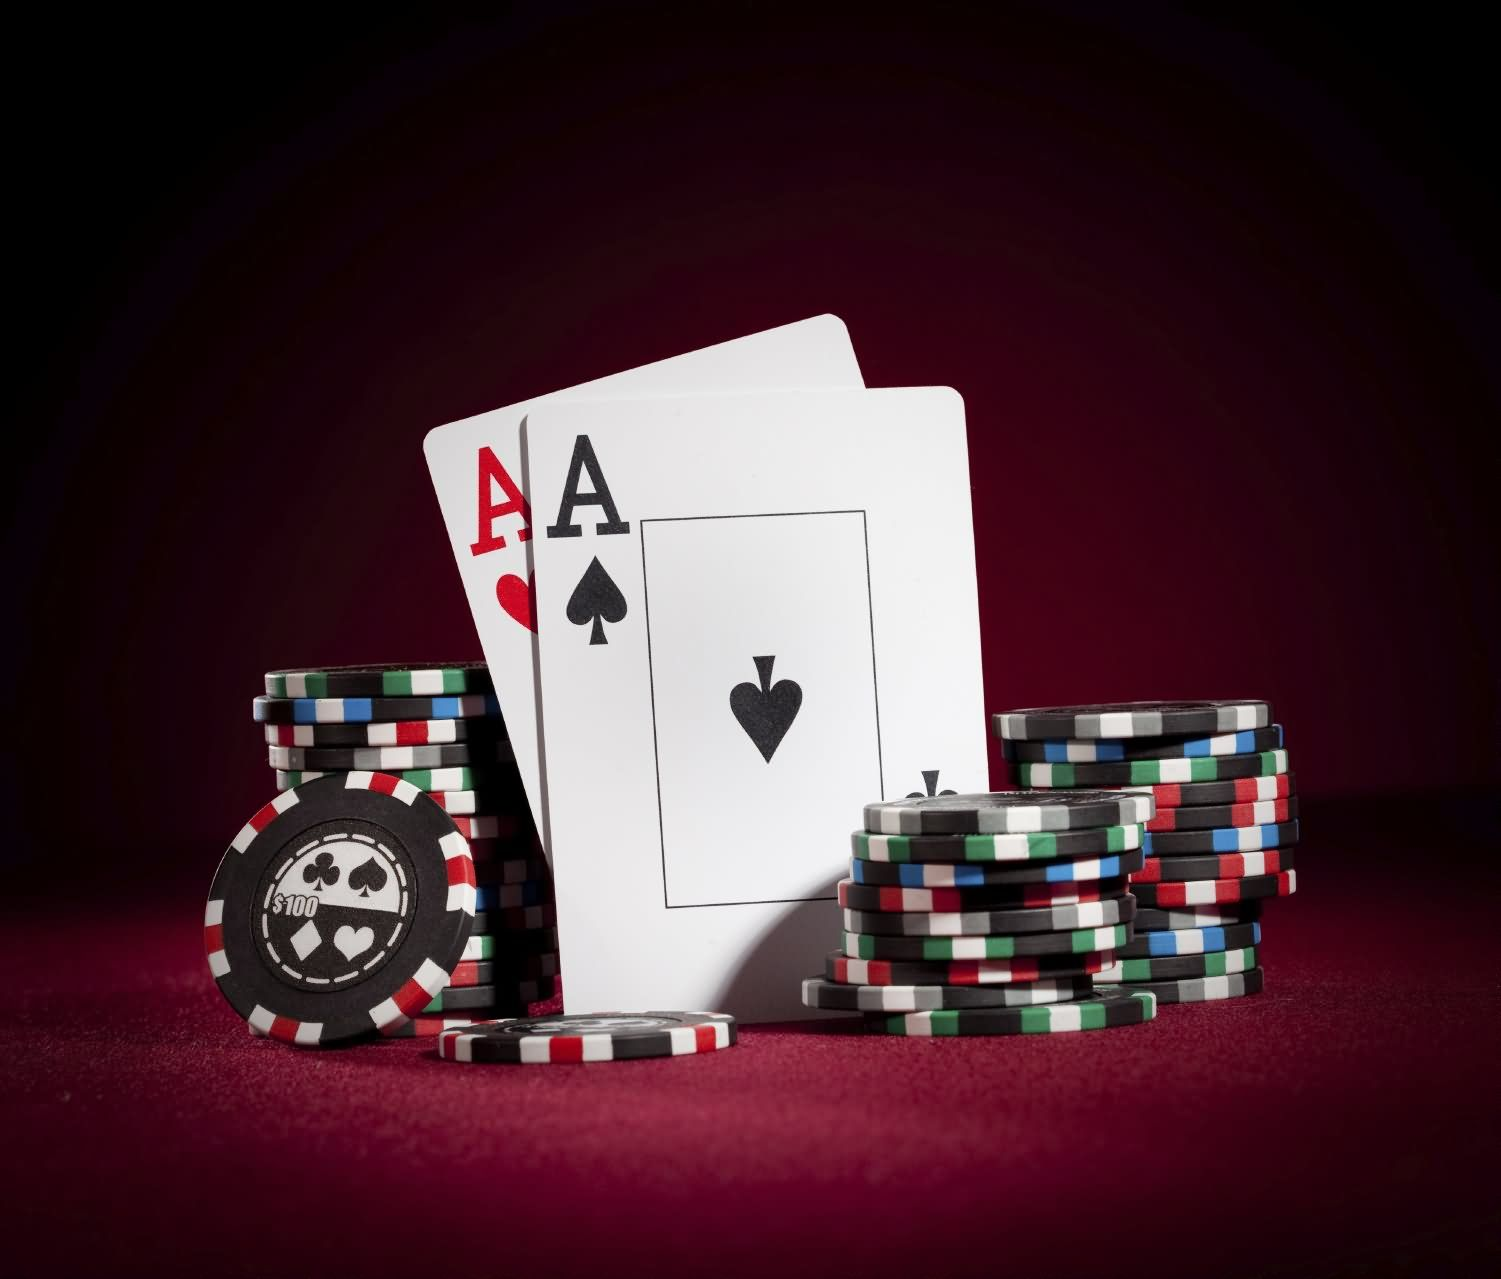 Best Spy Cheating Playing Cards In Kolkata 9999994242 Http Www Jmdcards Com Spy Cheating Playing Cards In Kolkata Html Buy On Poker Games Poker Playing Cards